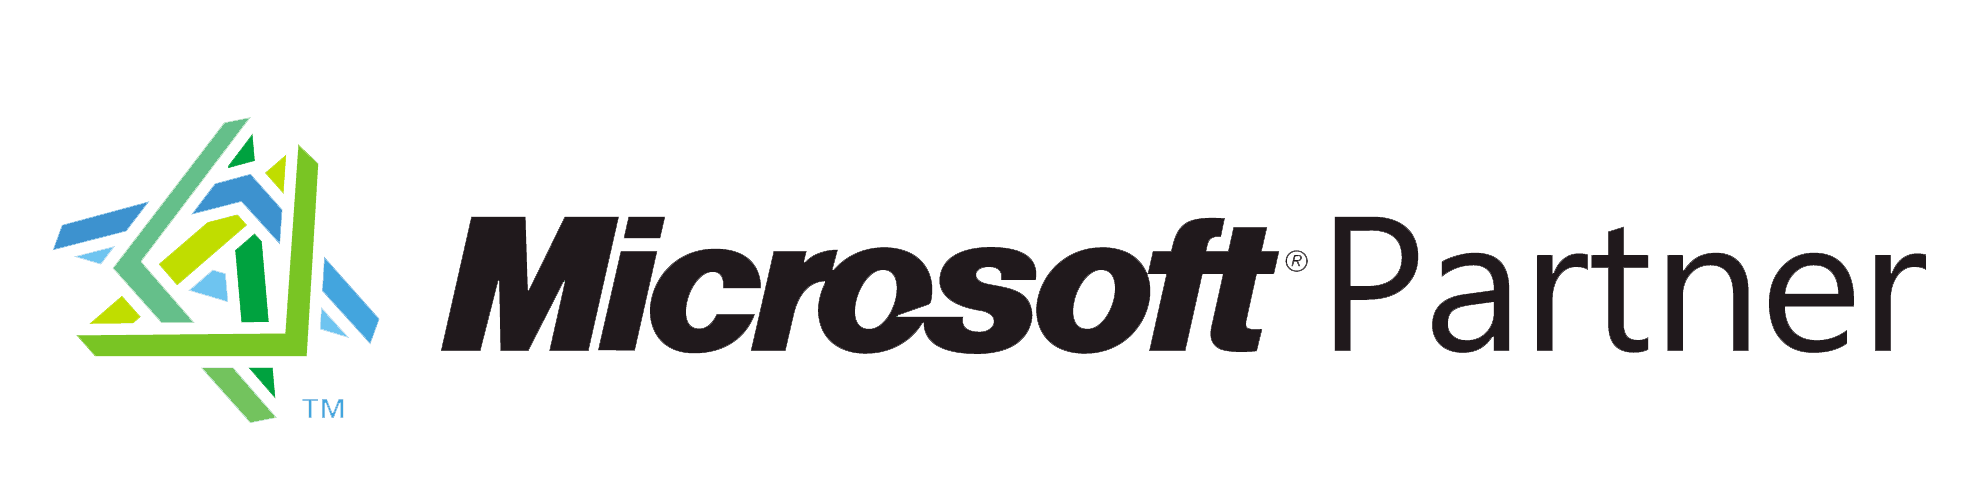 Microsoft partner, microsoft 365 office 365 windows cloud werkplek